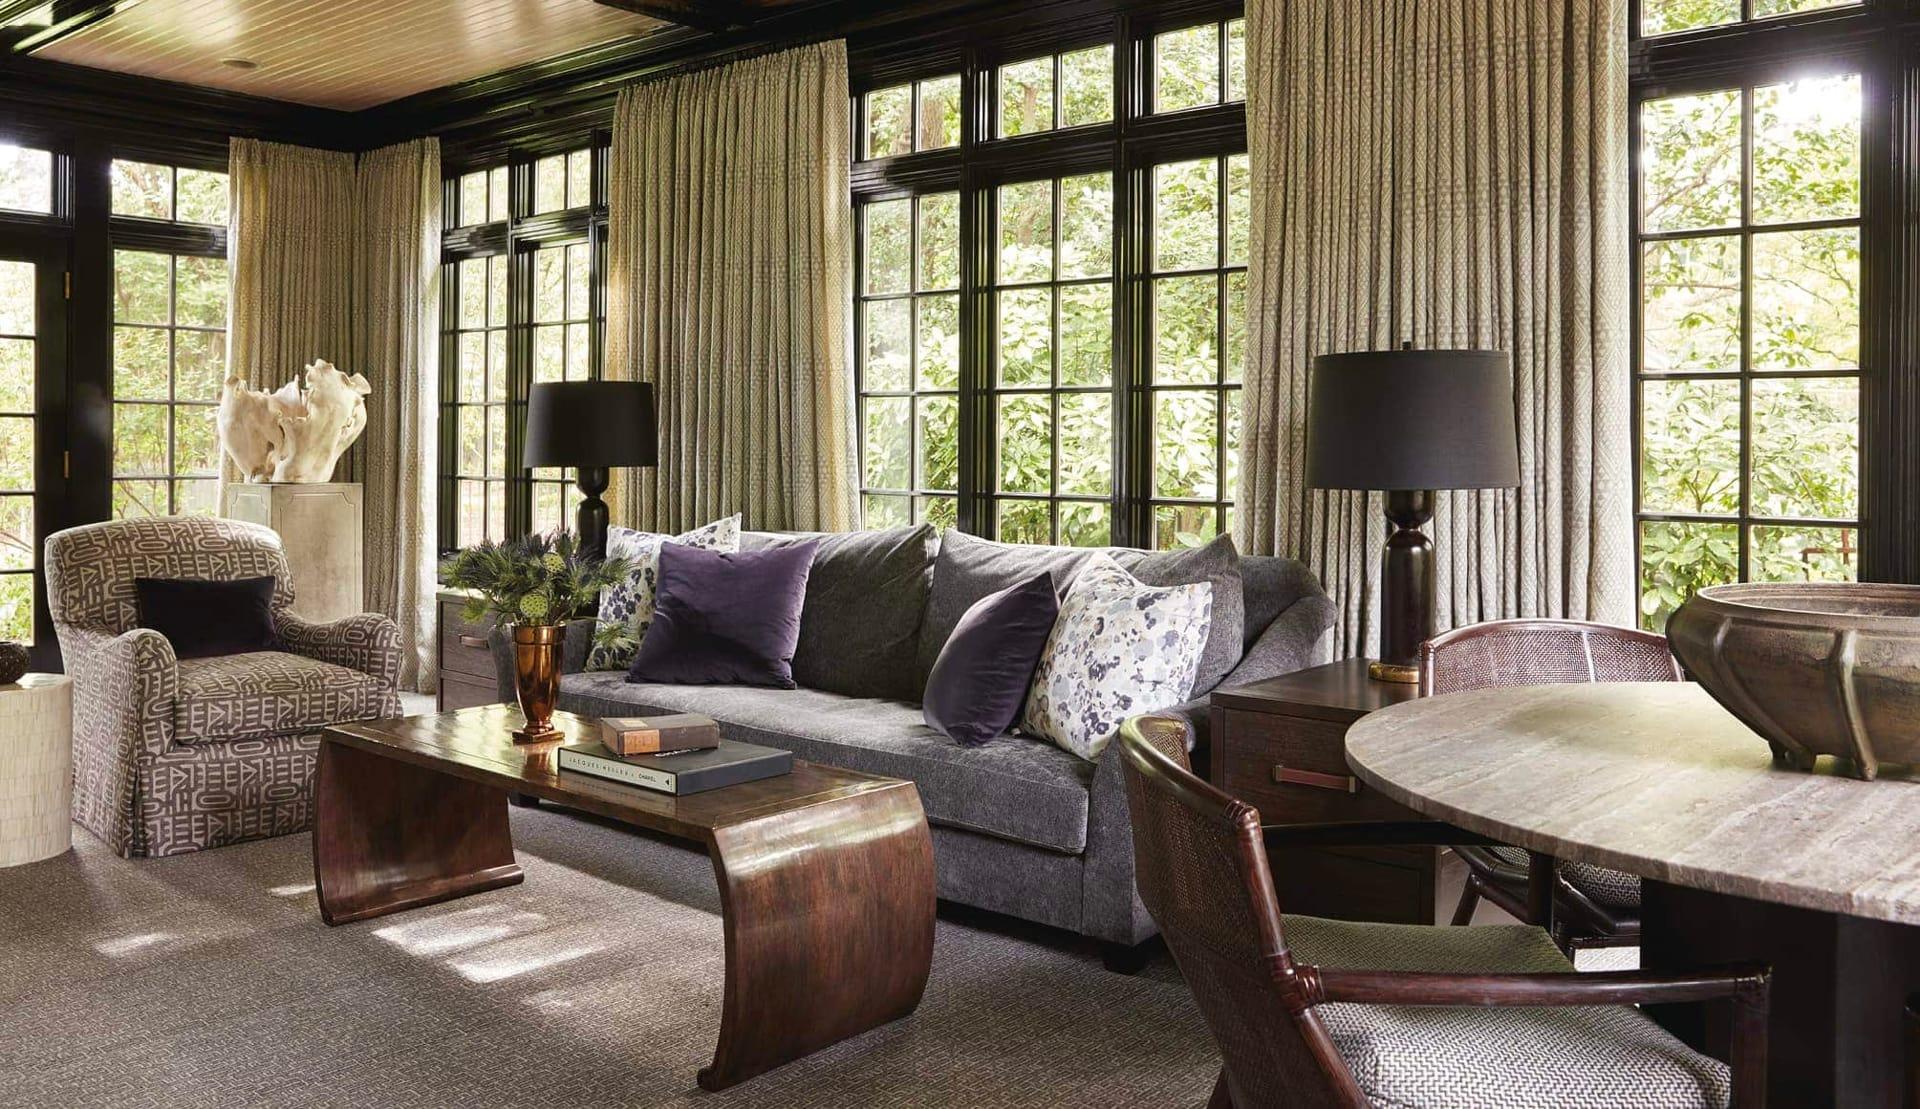 Sunny siting area with dark wood trim and comfortable sofa and chairs